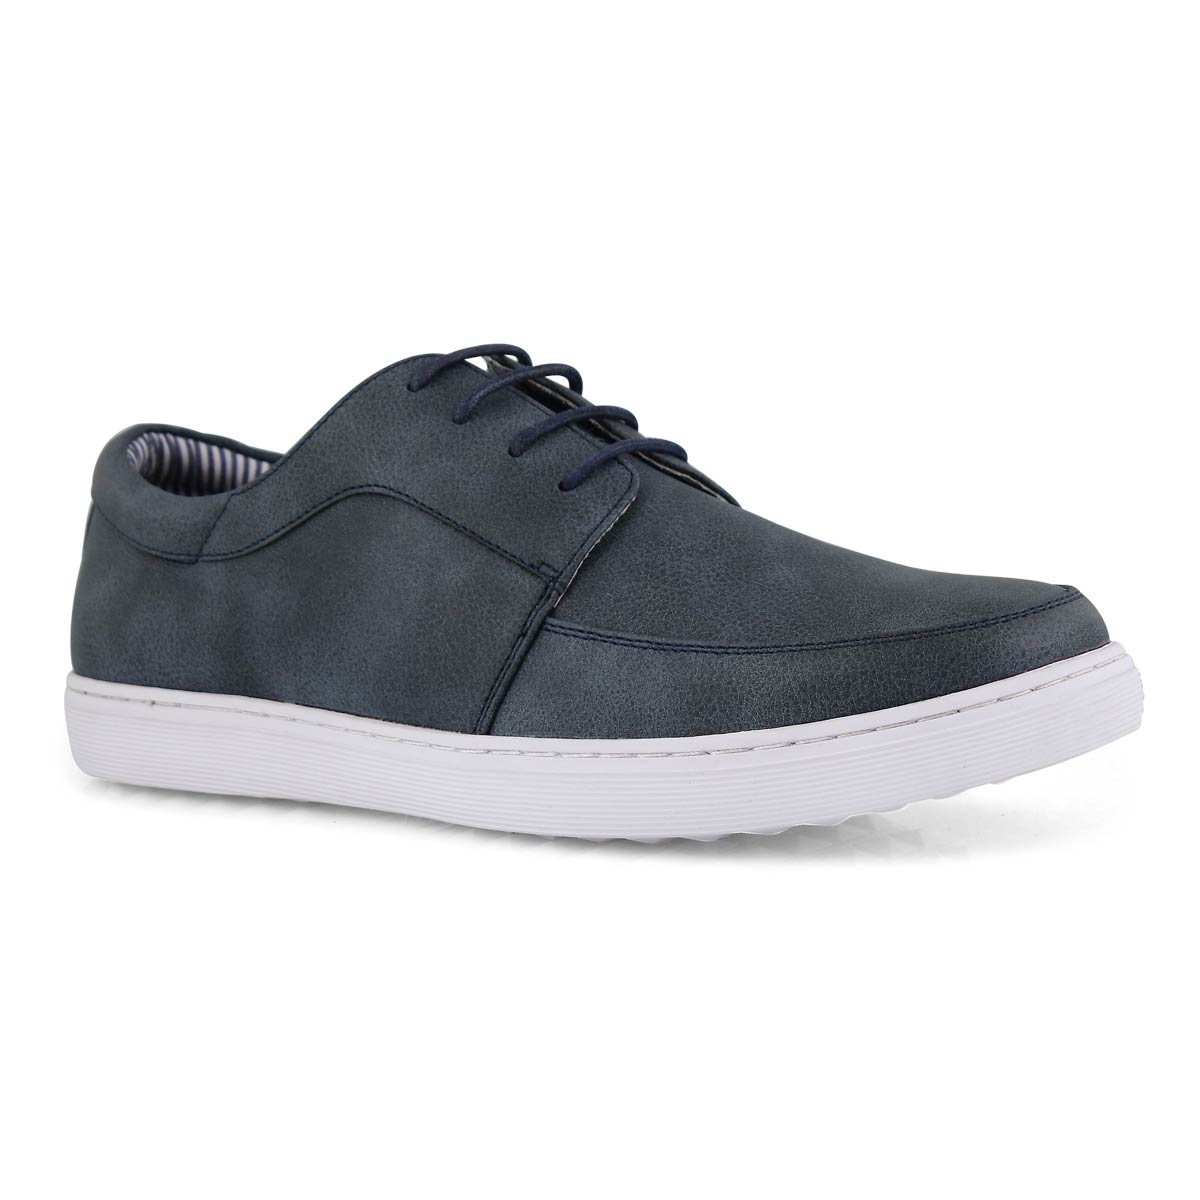 Mns Jamieson navy casual lace up shoe